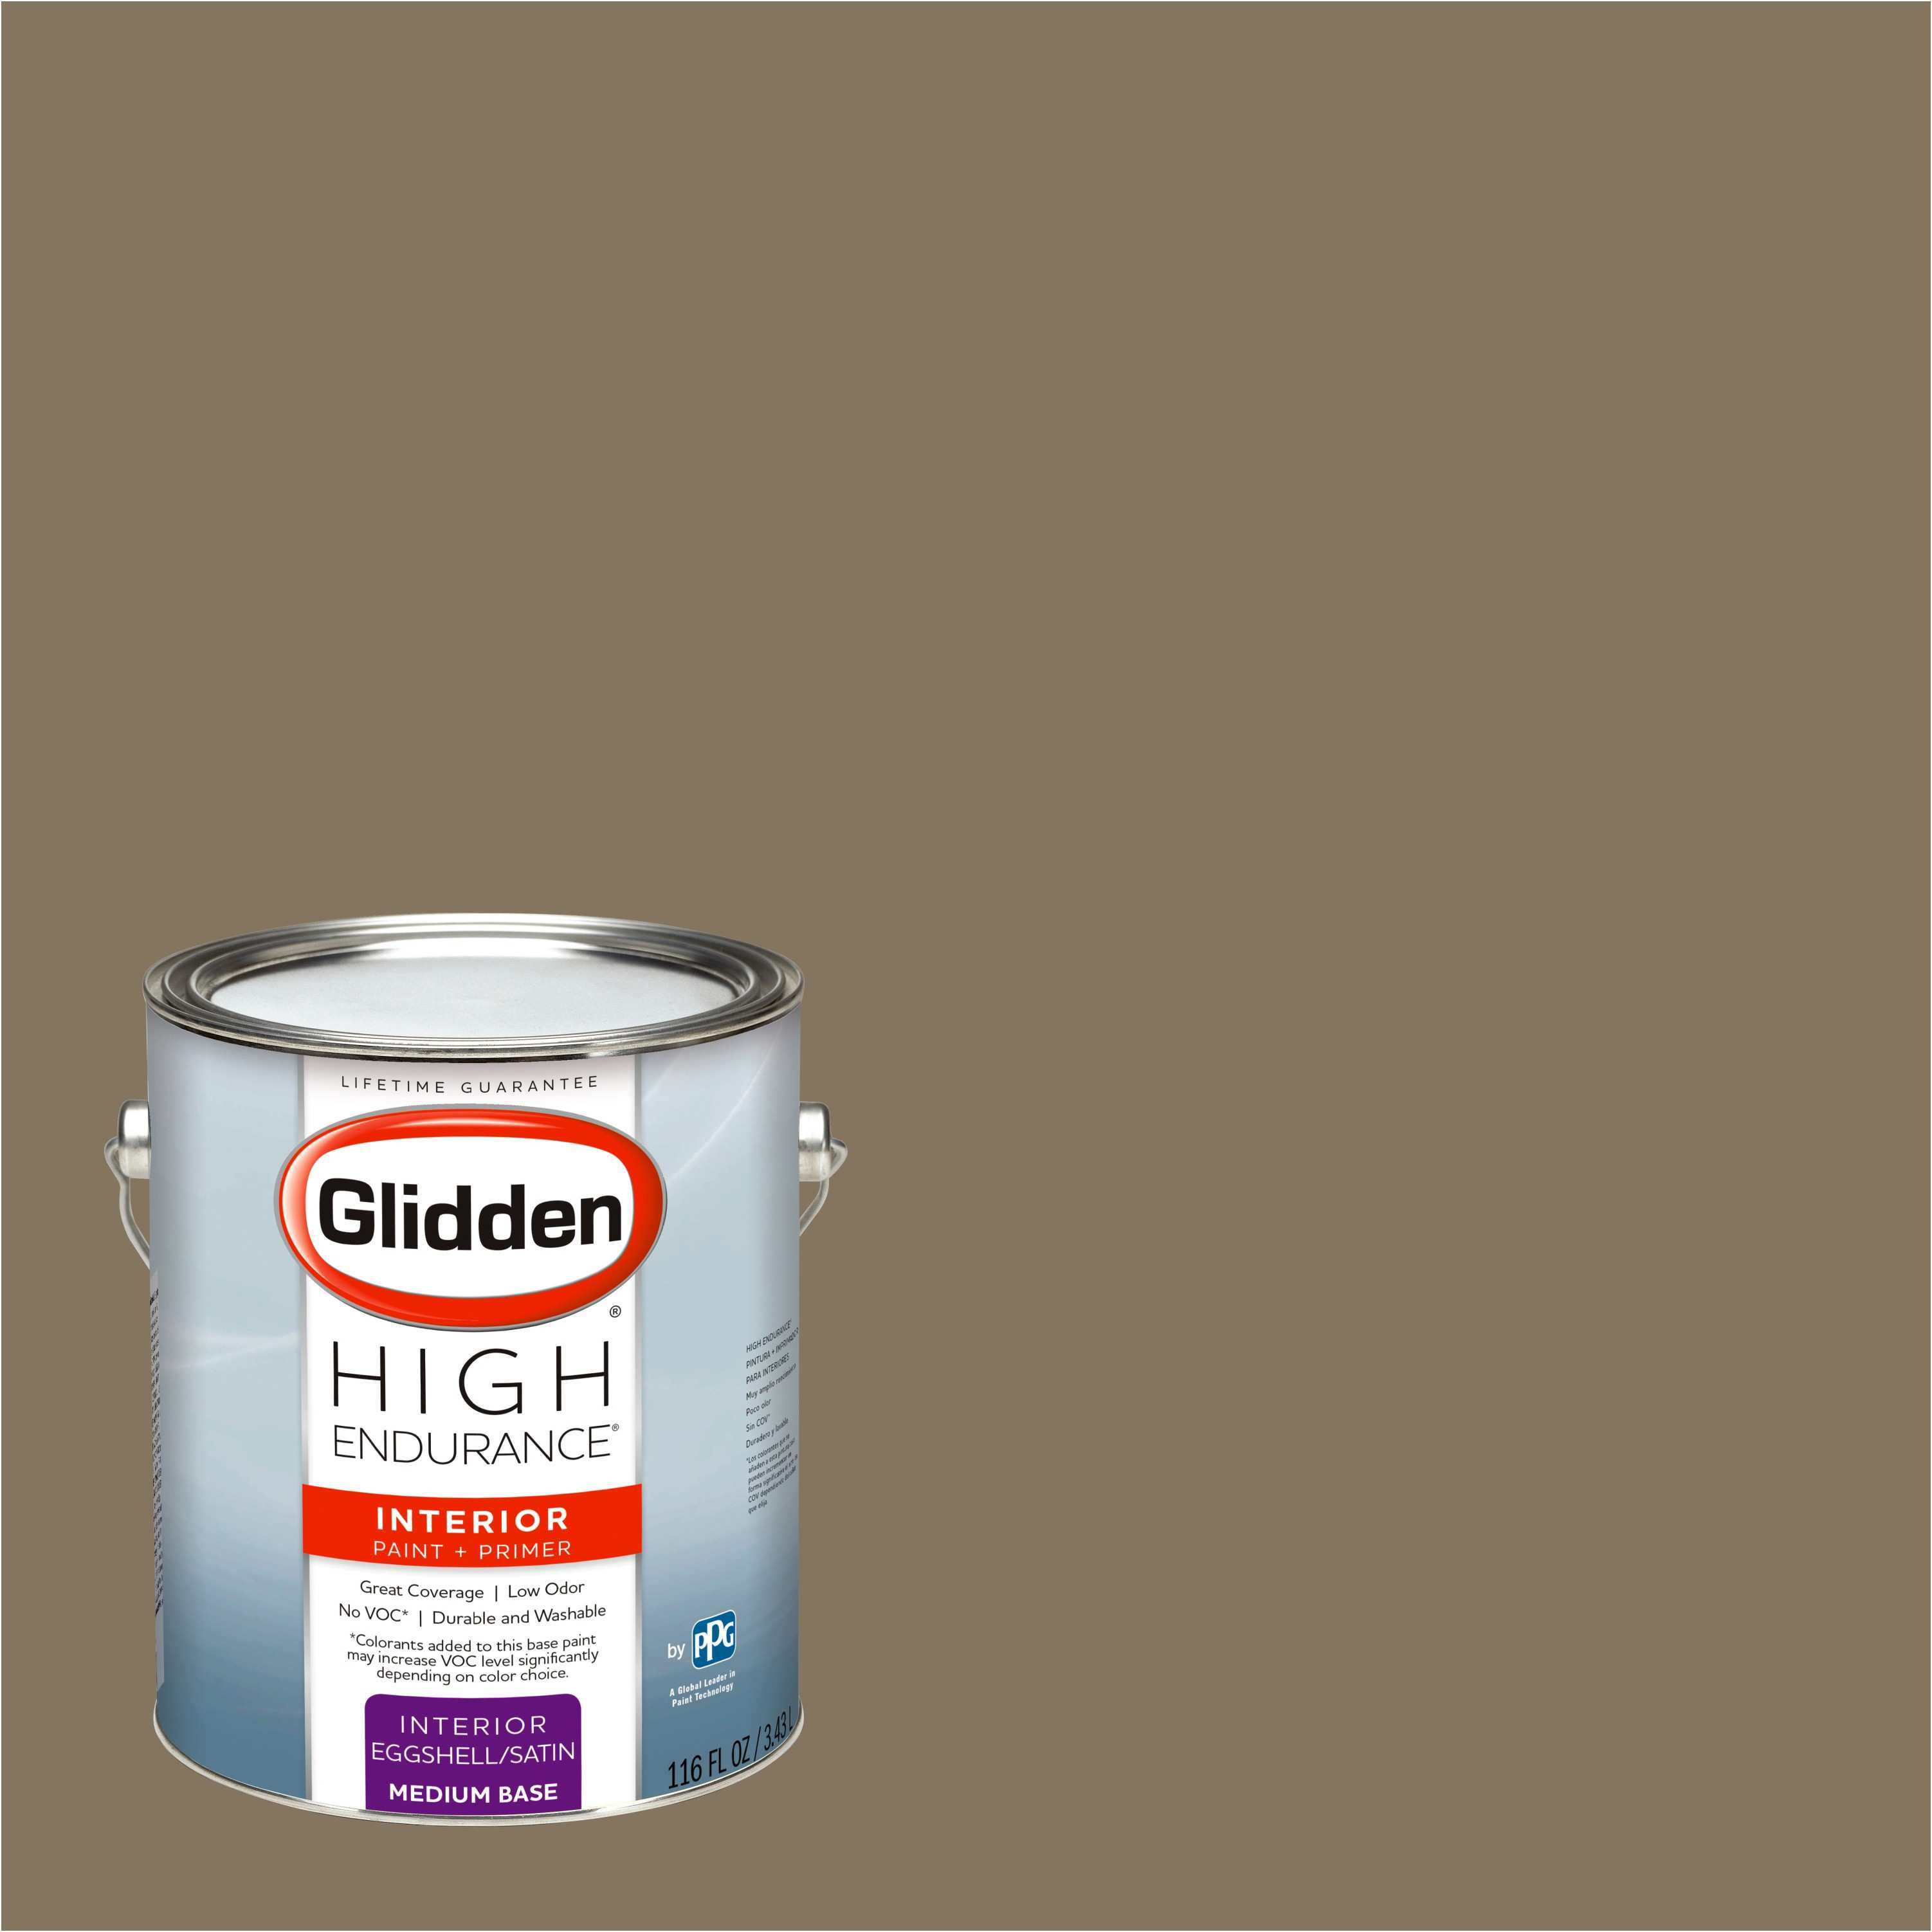 Glidden High Endurance Interior Paint and Primer Le Chateau Brown